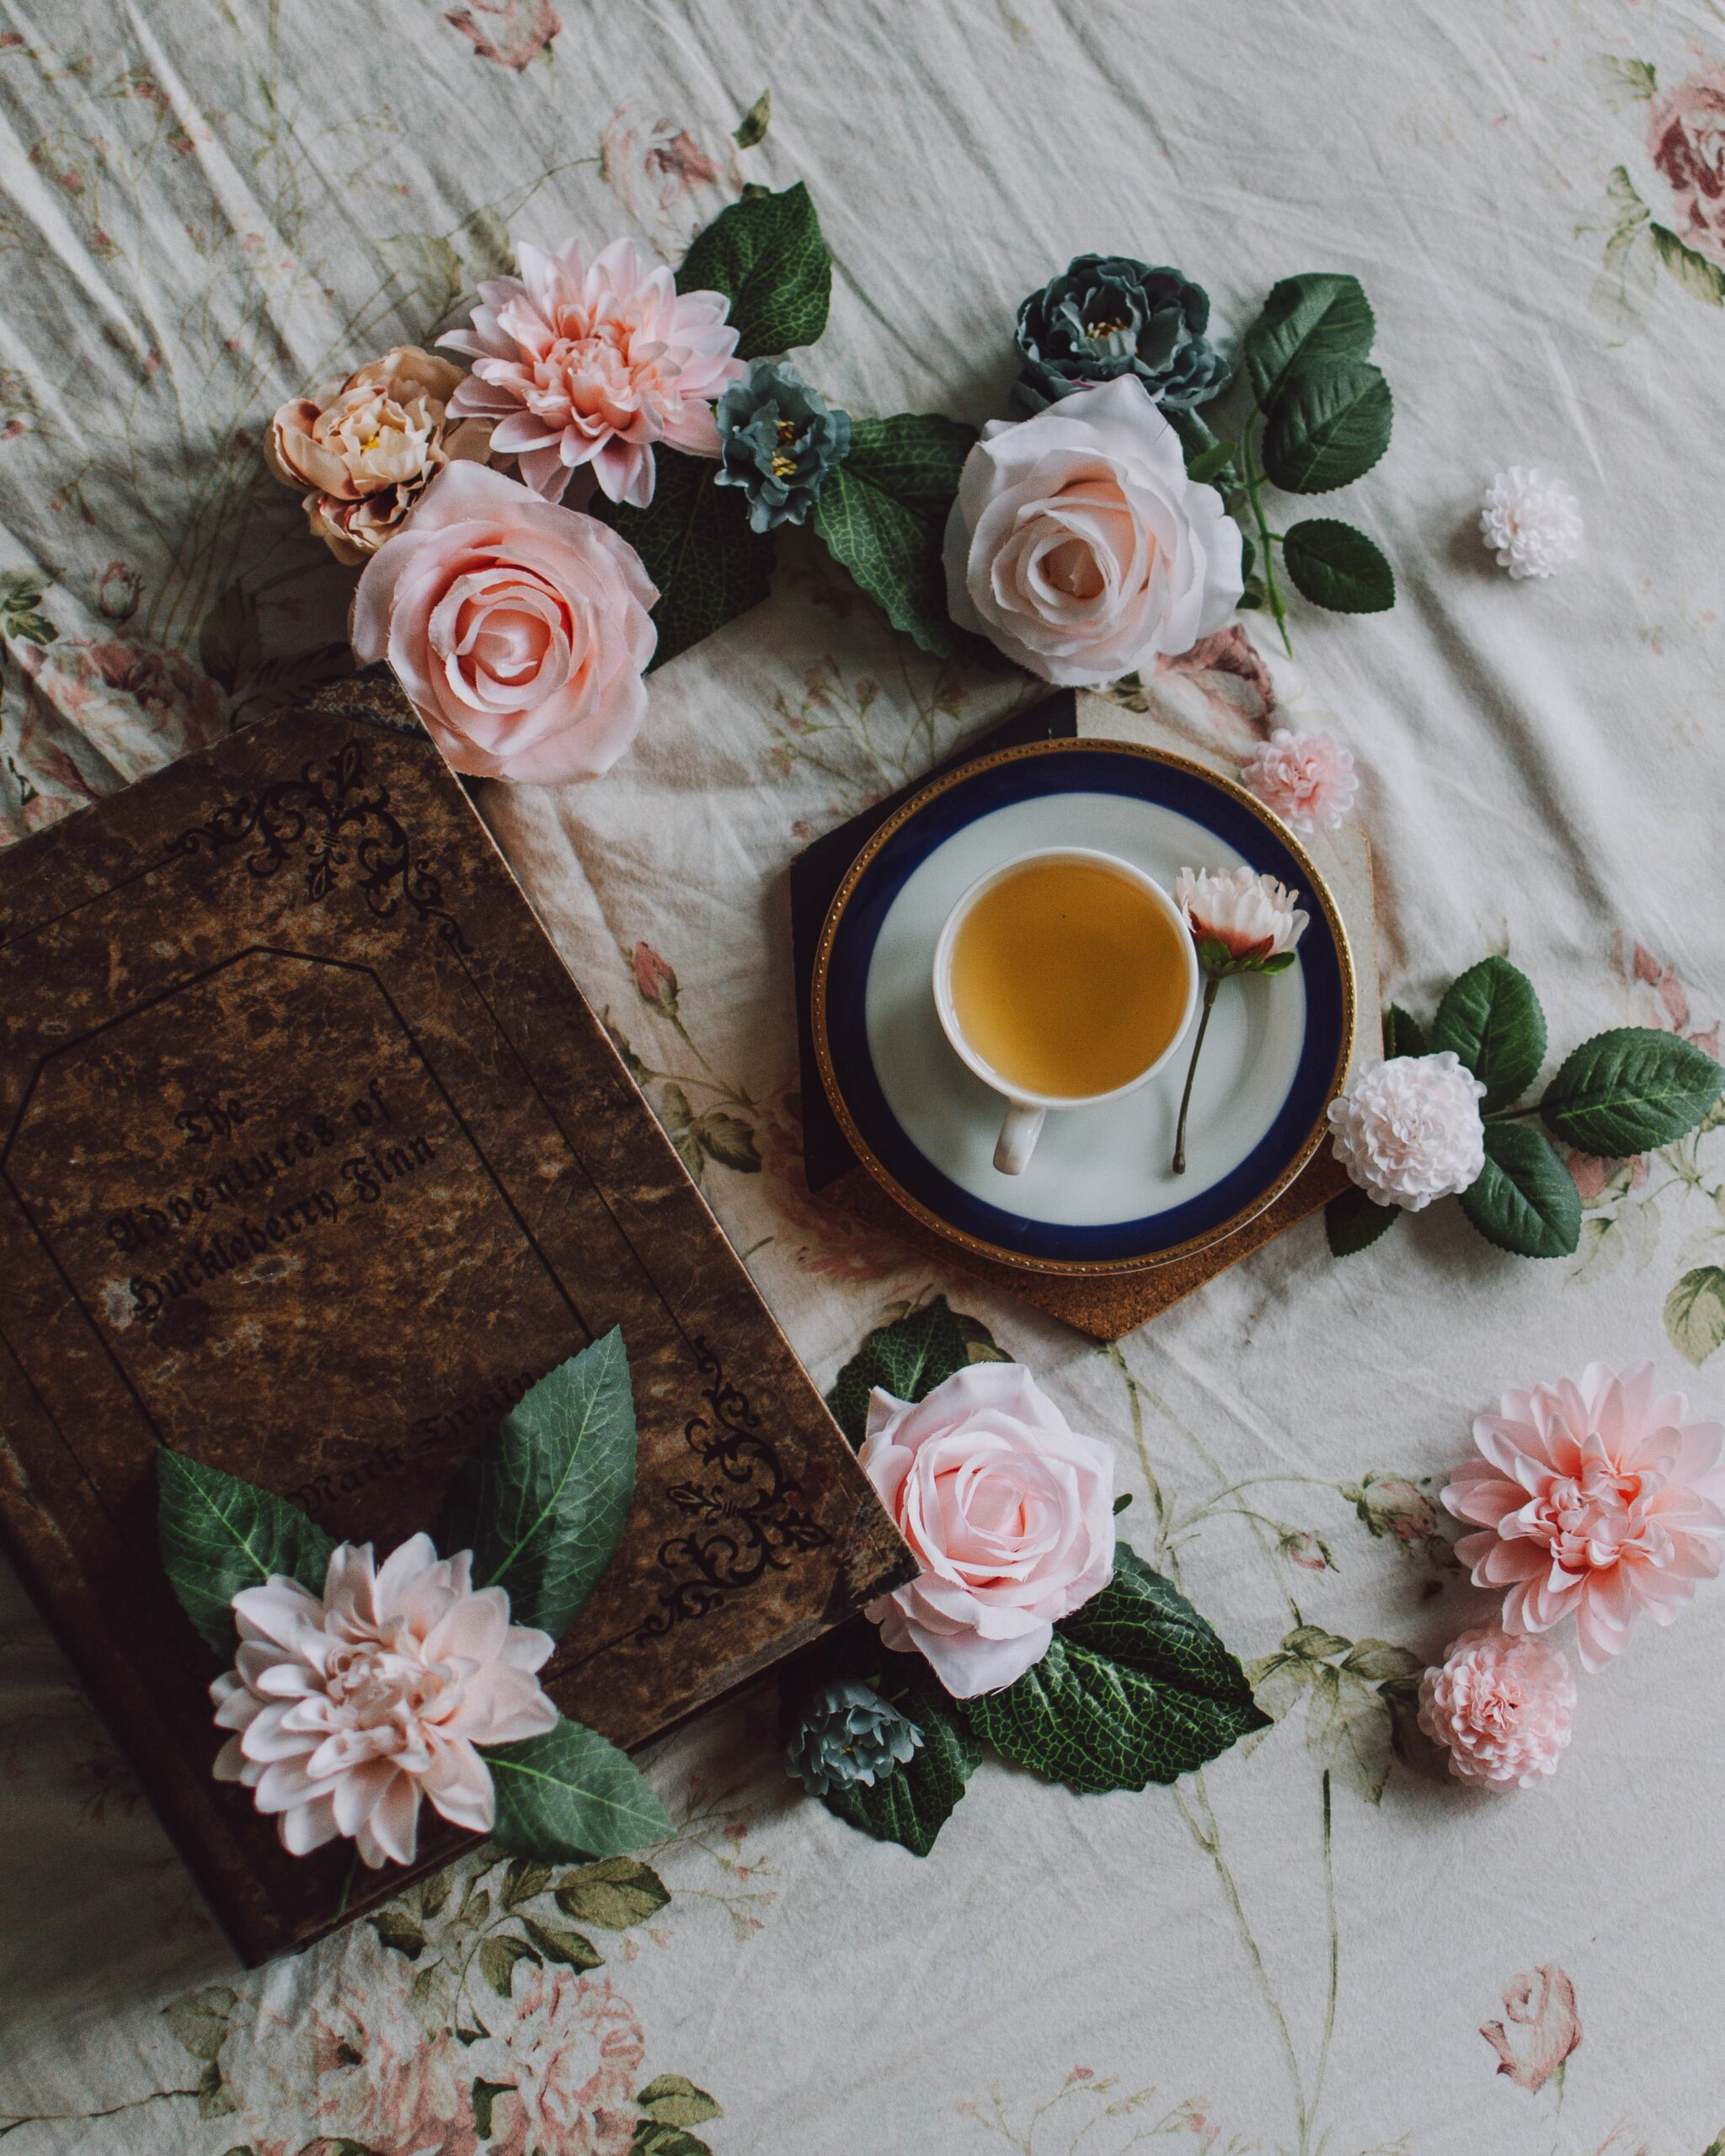 A photo taken from above. You can see a cup of white tea next to a brown book and pink flowers